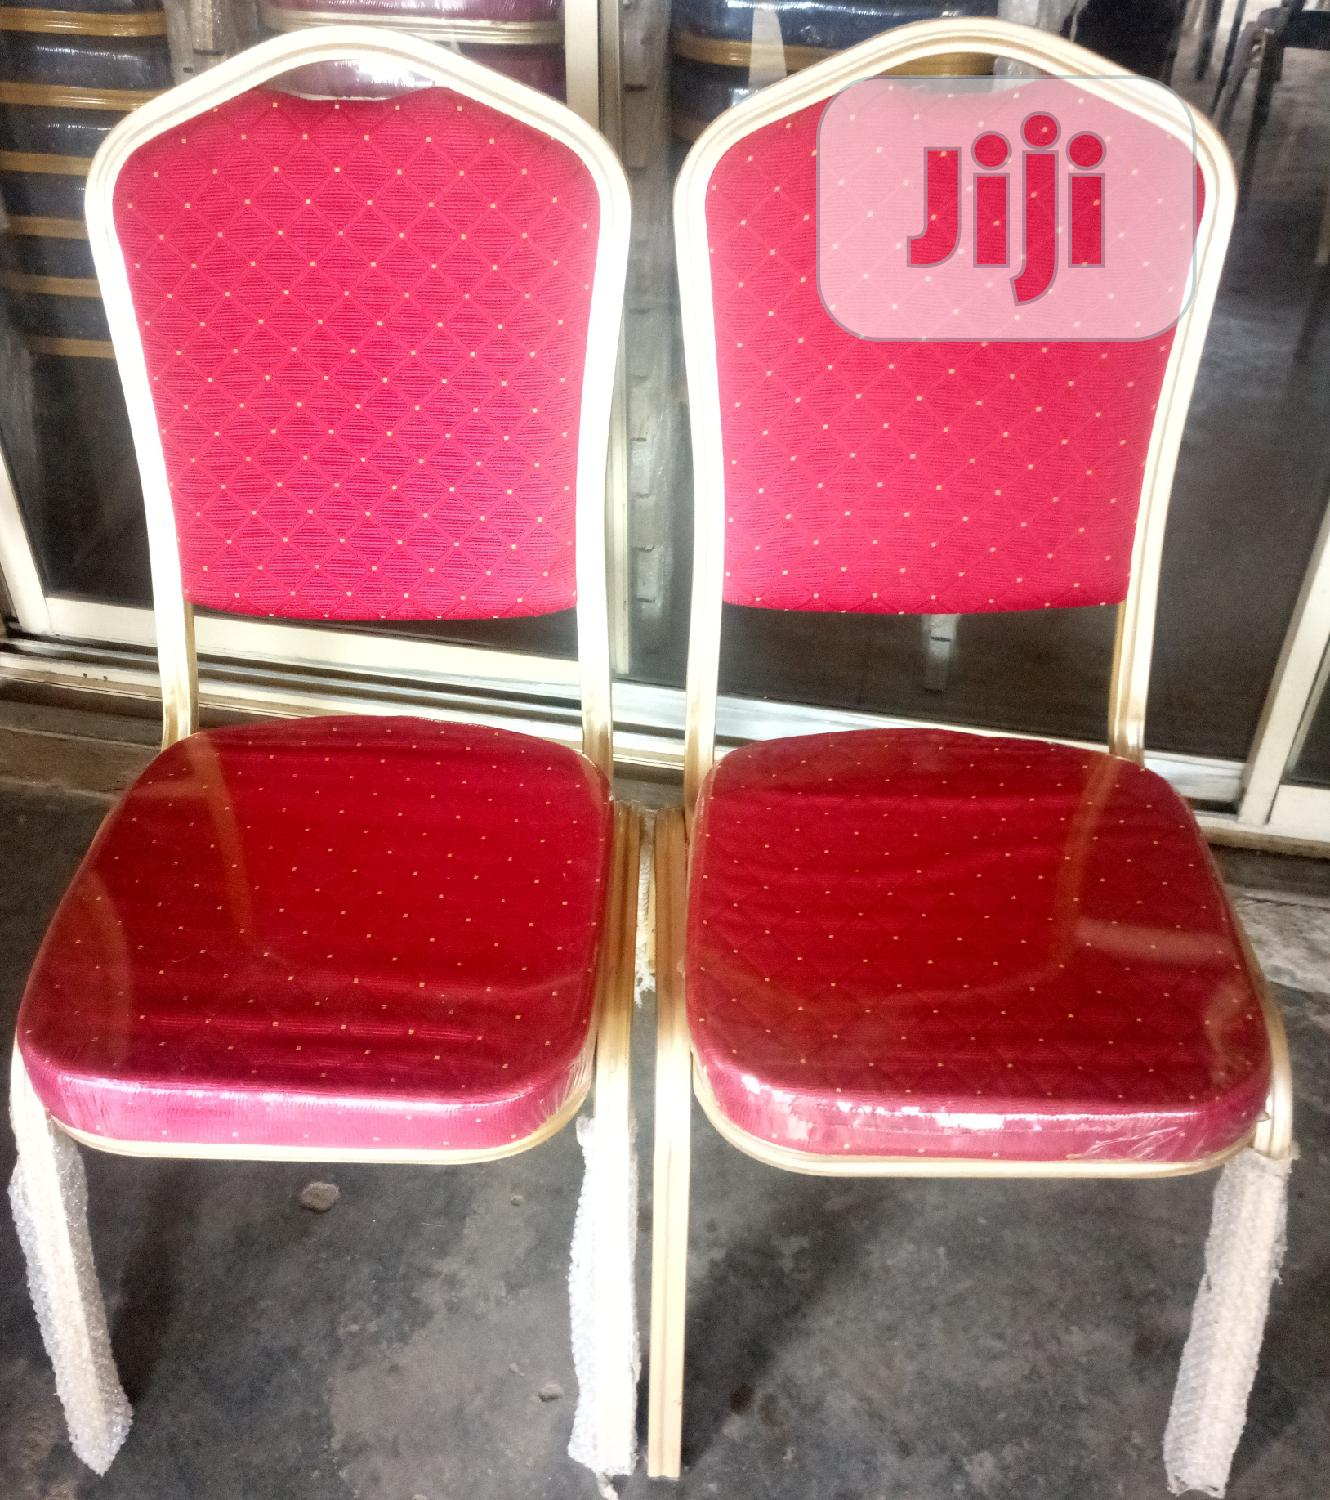 Higher Quality Big Surpass Multipurpose Banquet Chairs